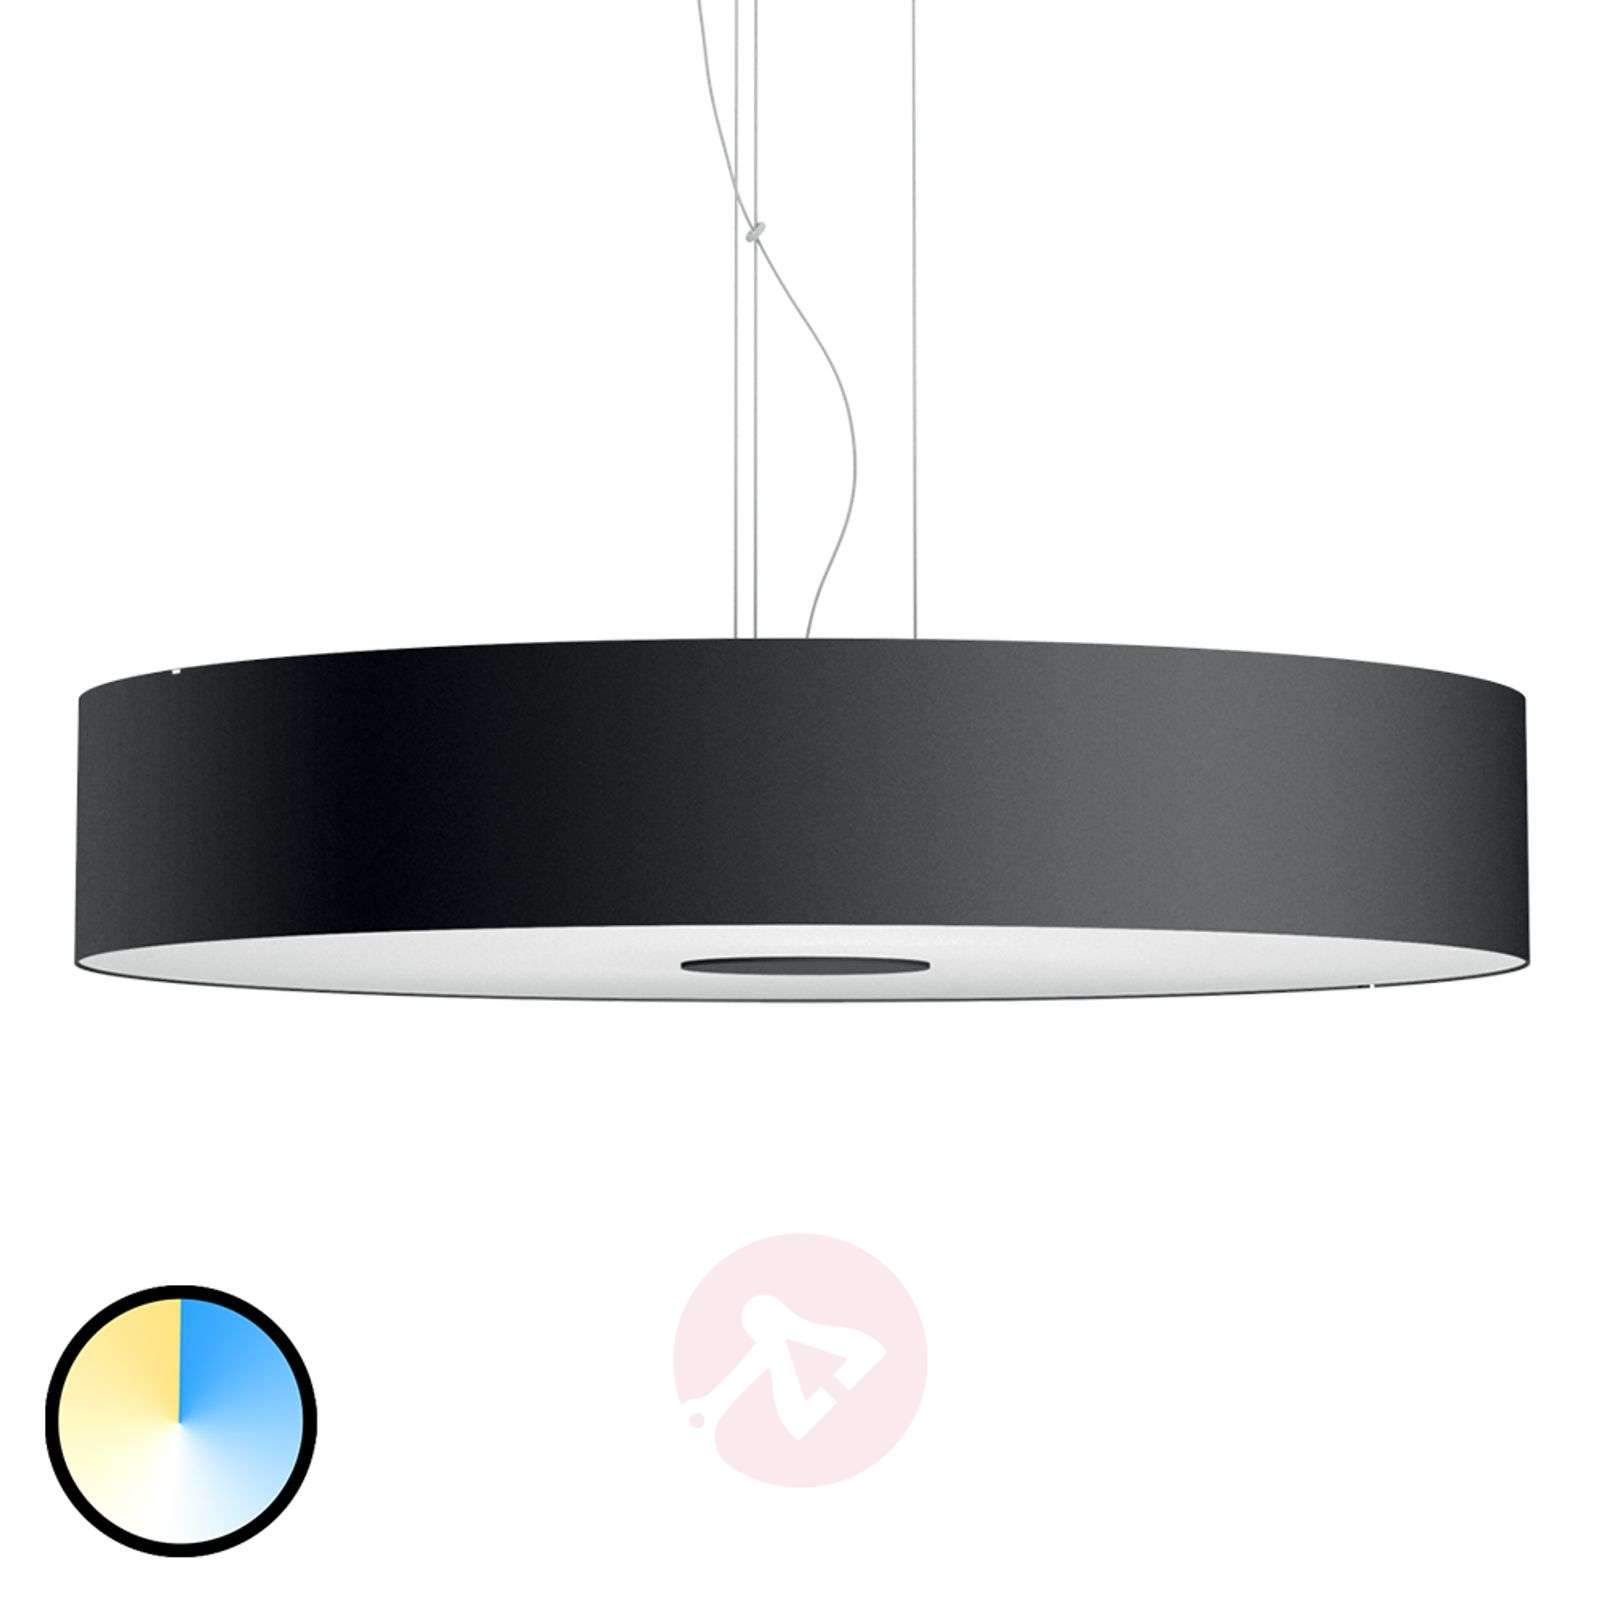 Plafoniera Tubo Led Philips : Philips hue led hanging light fair dimmer switch lights.ie